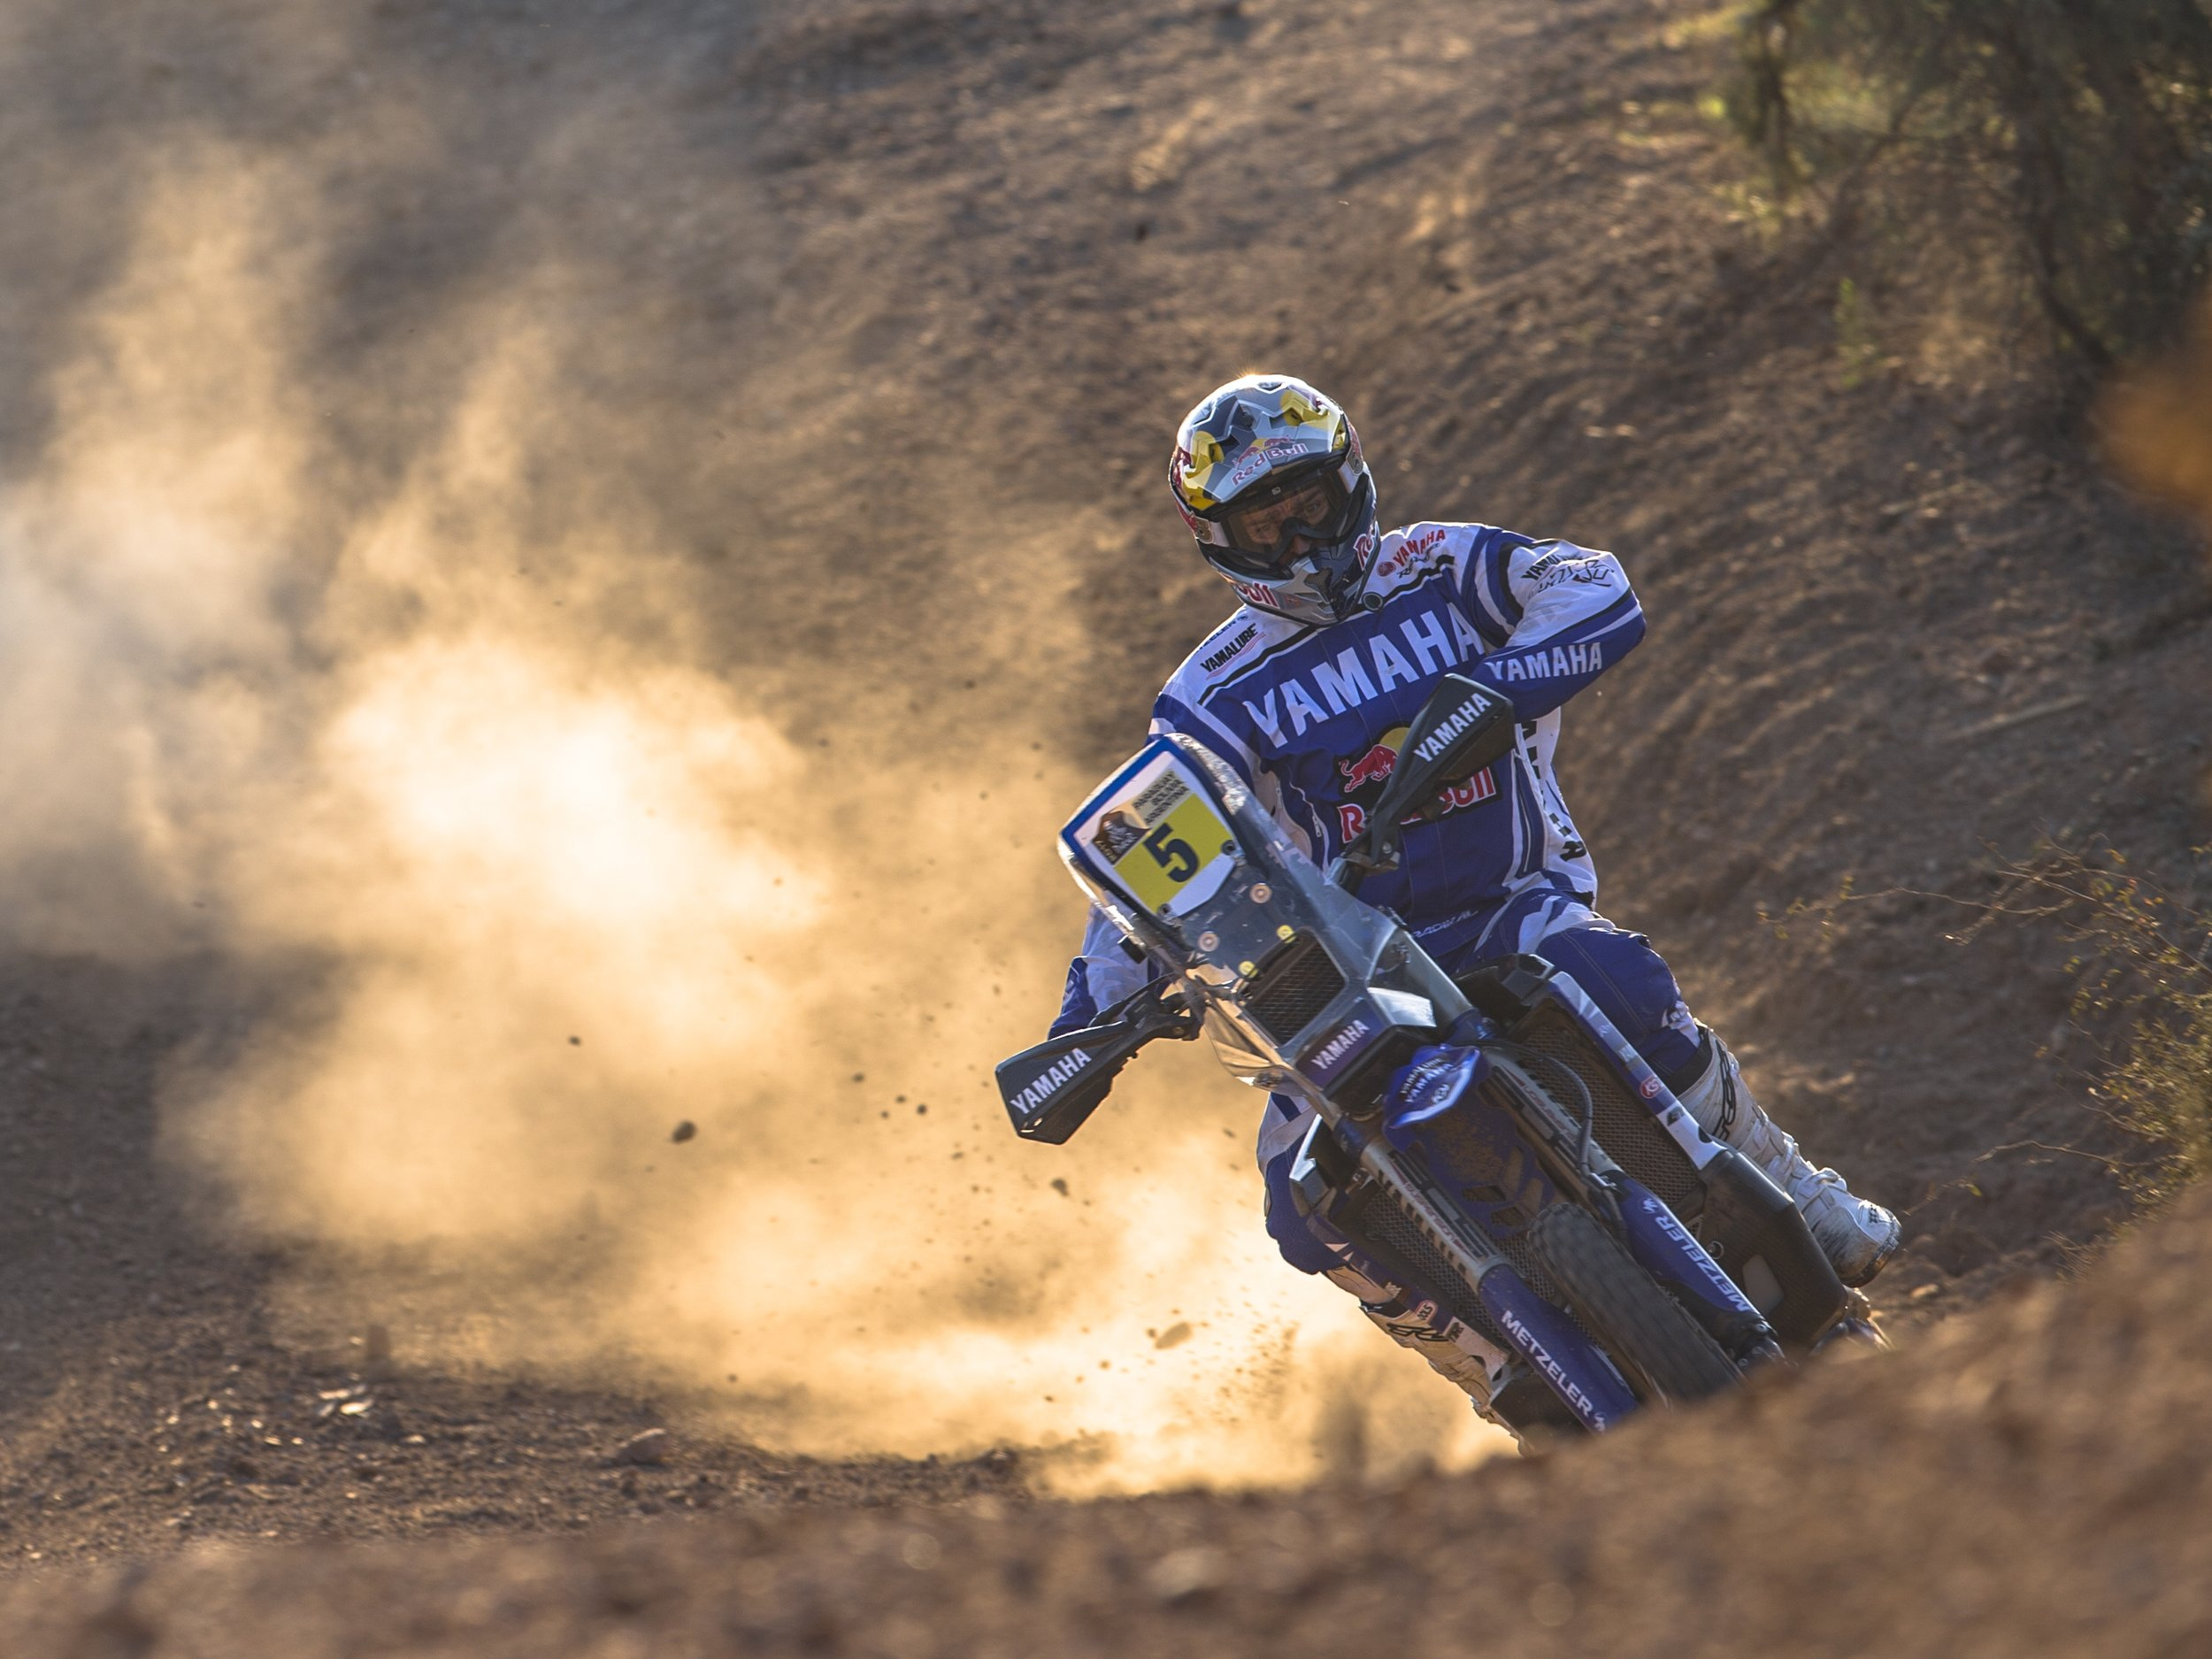 2017_WR450FRALLY_ACT_007.jpg